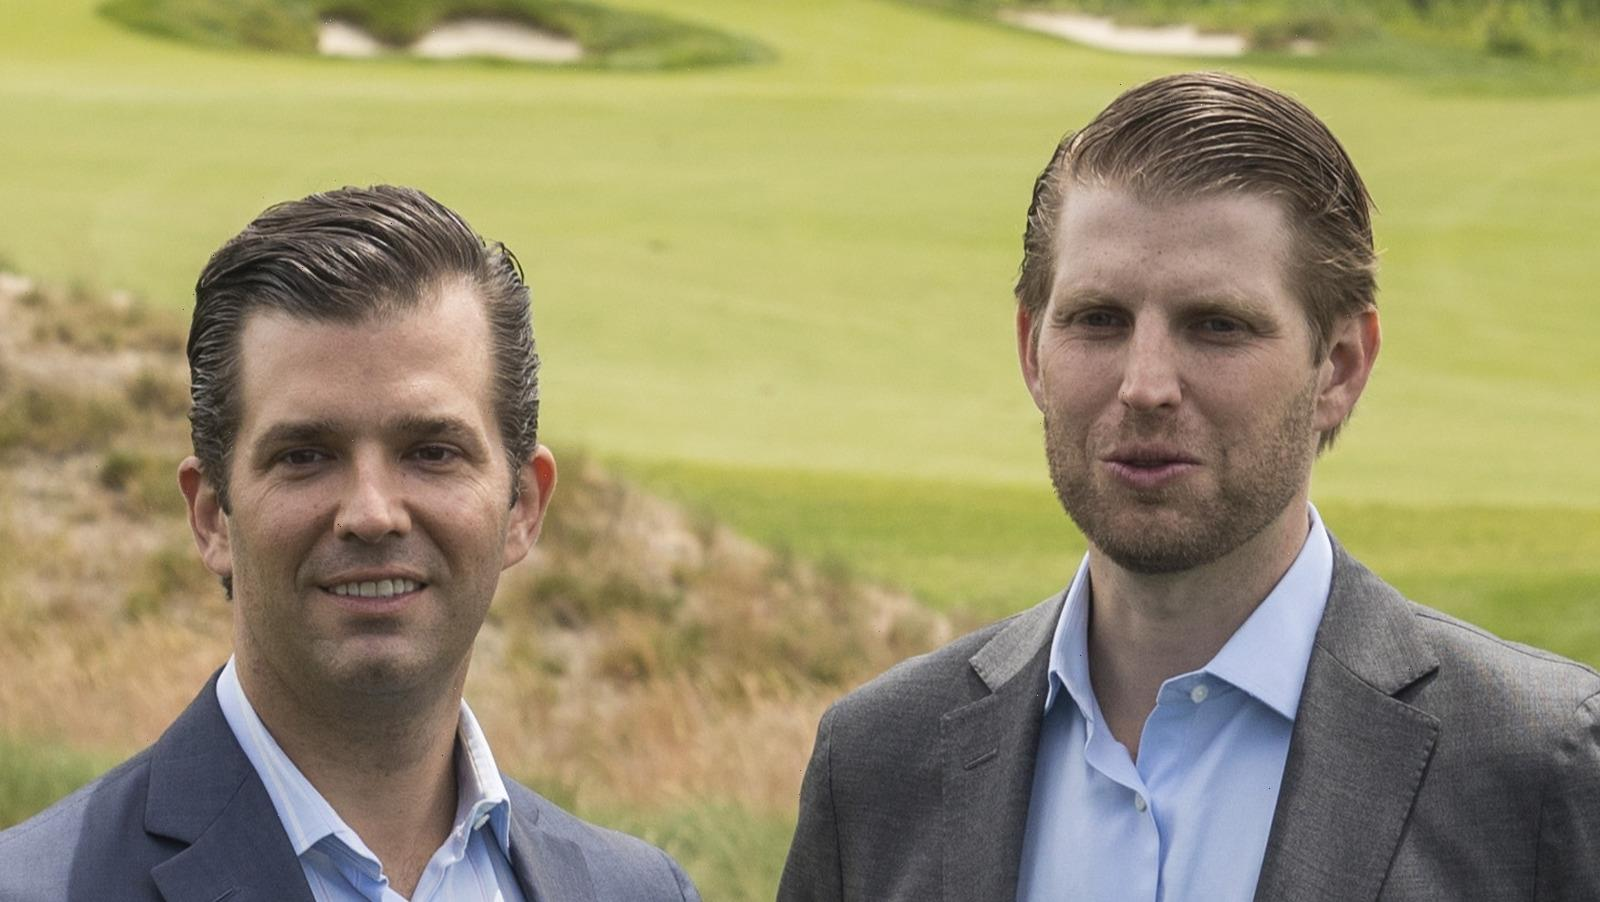 Don Jr. And Eric Trumps Reaction To The Indictment Has Twitter In A Tizzy